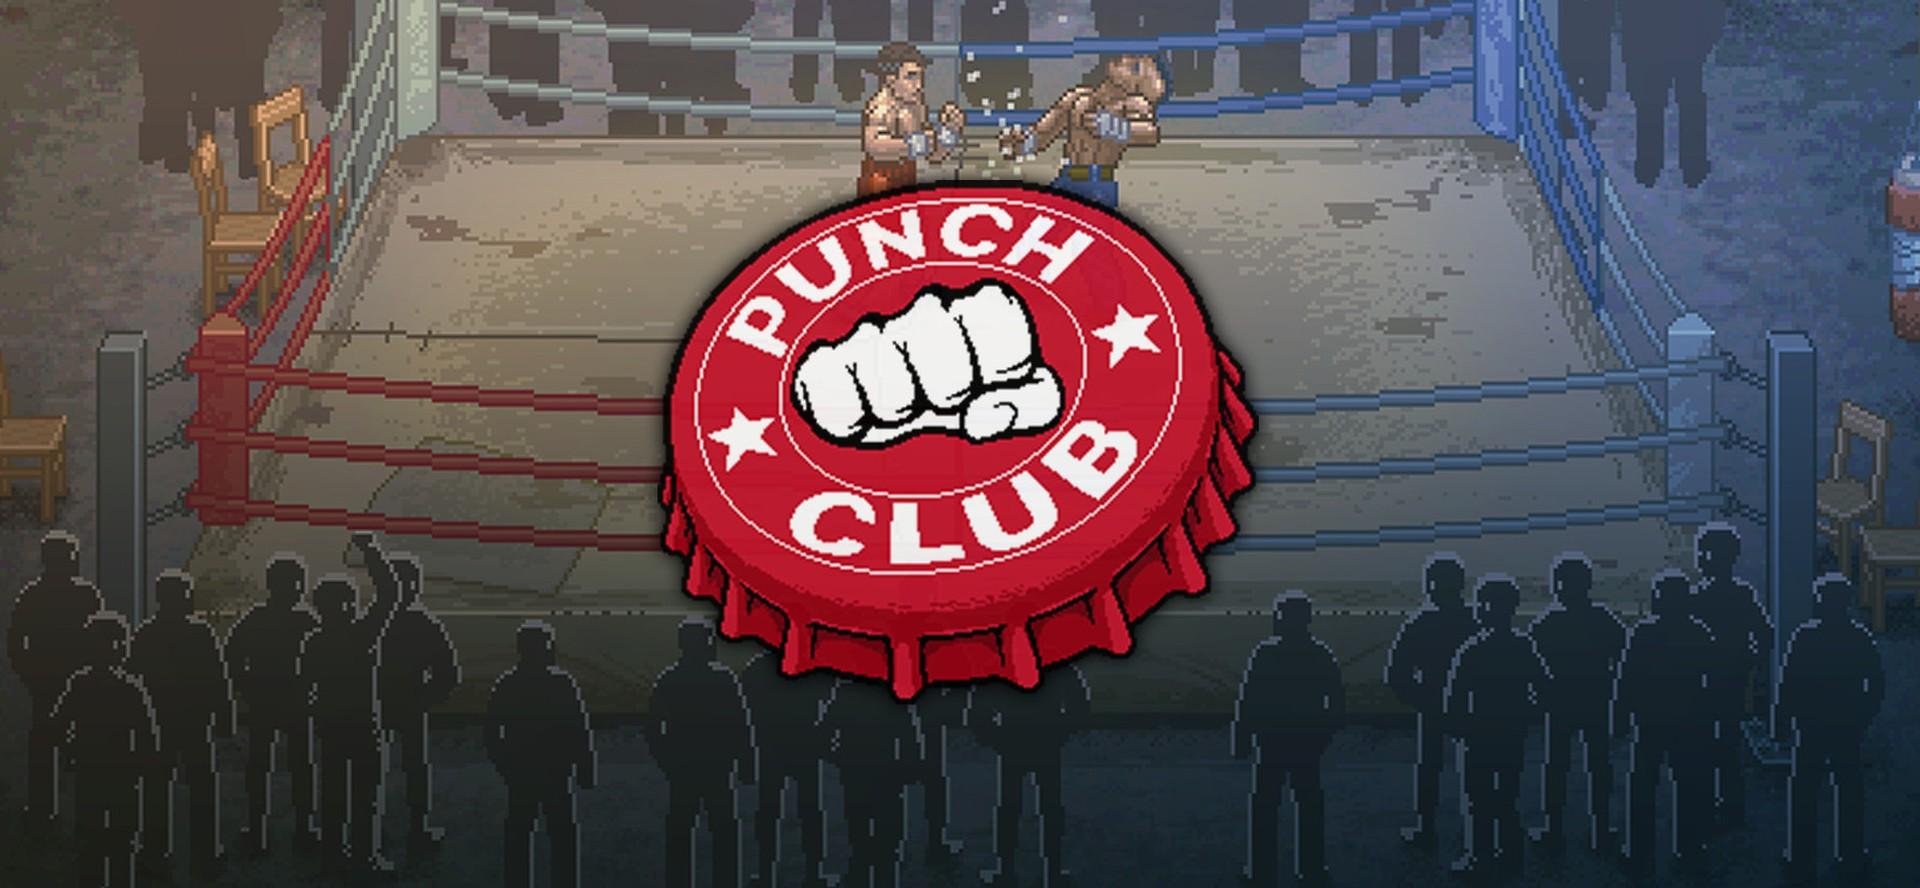 Punch Club Video